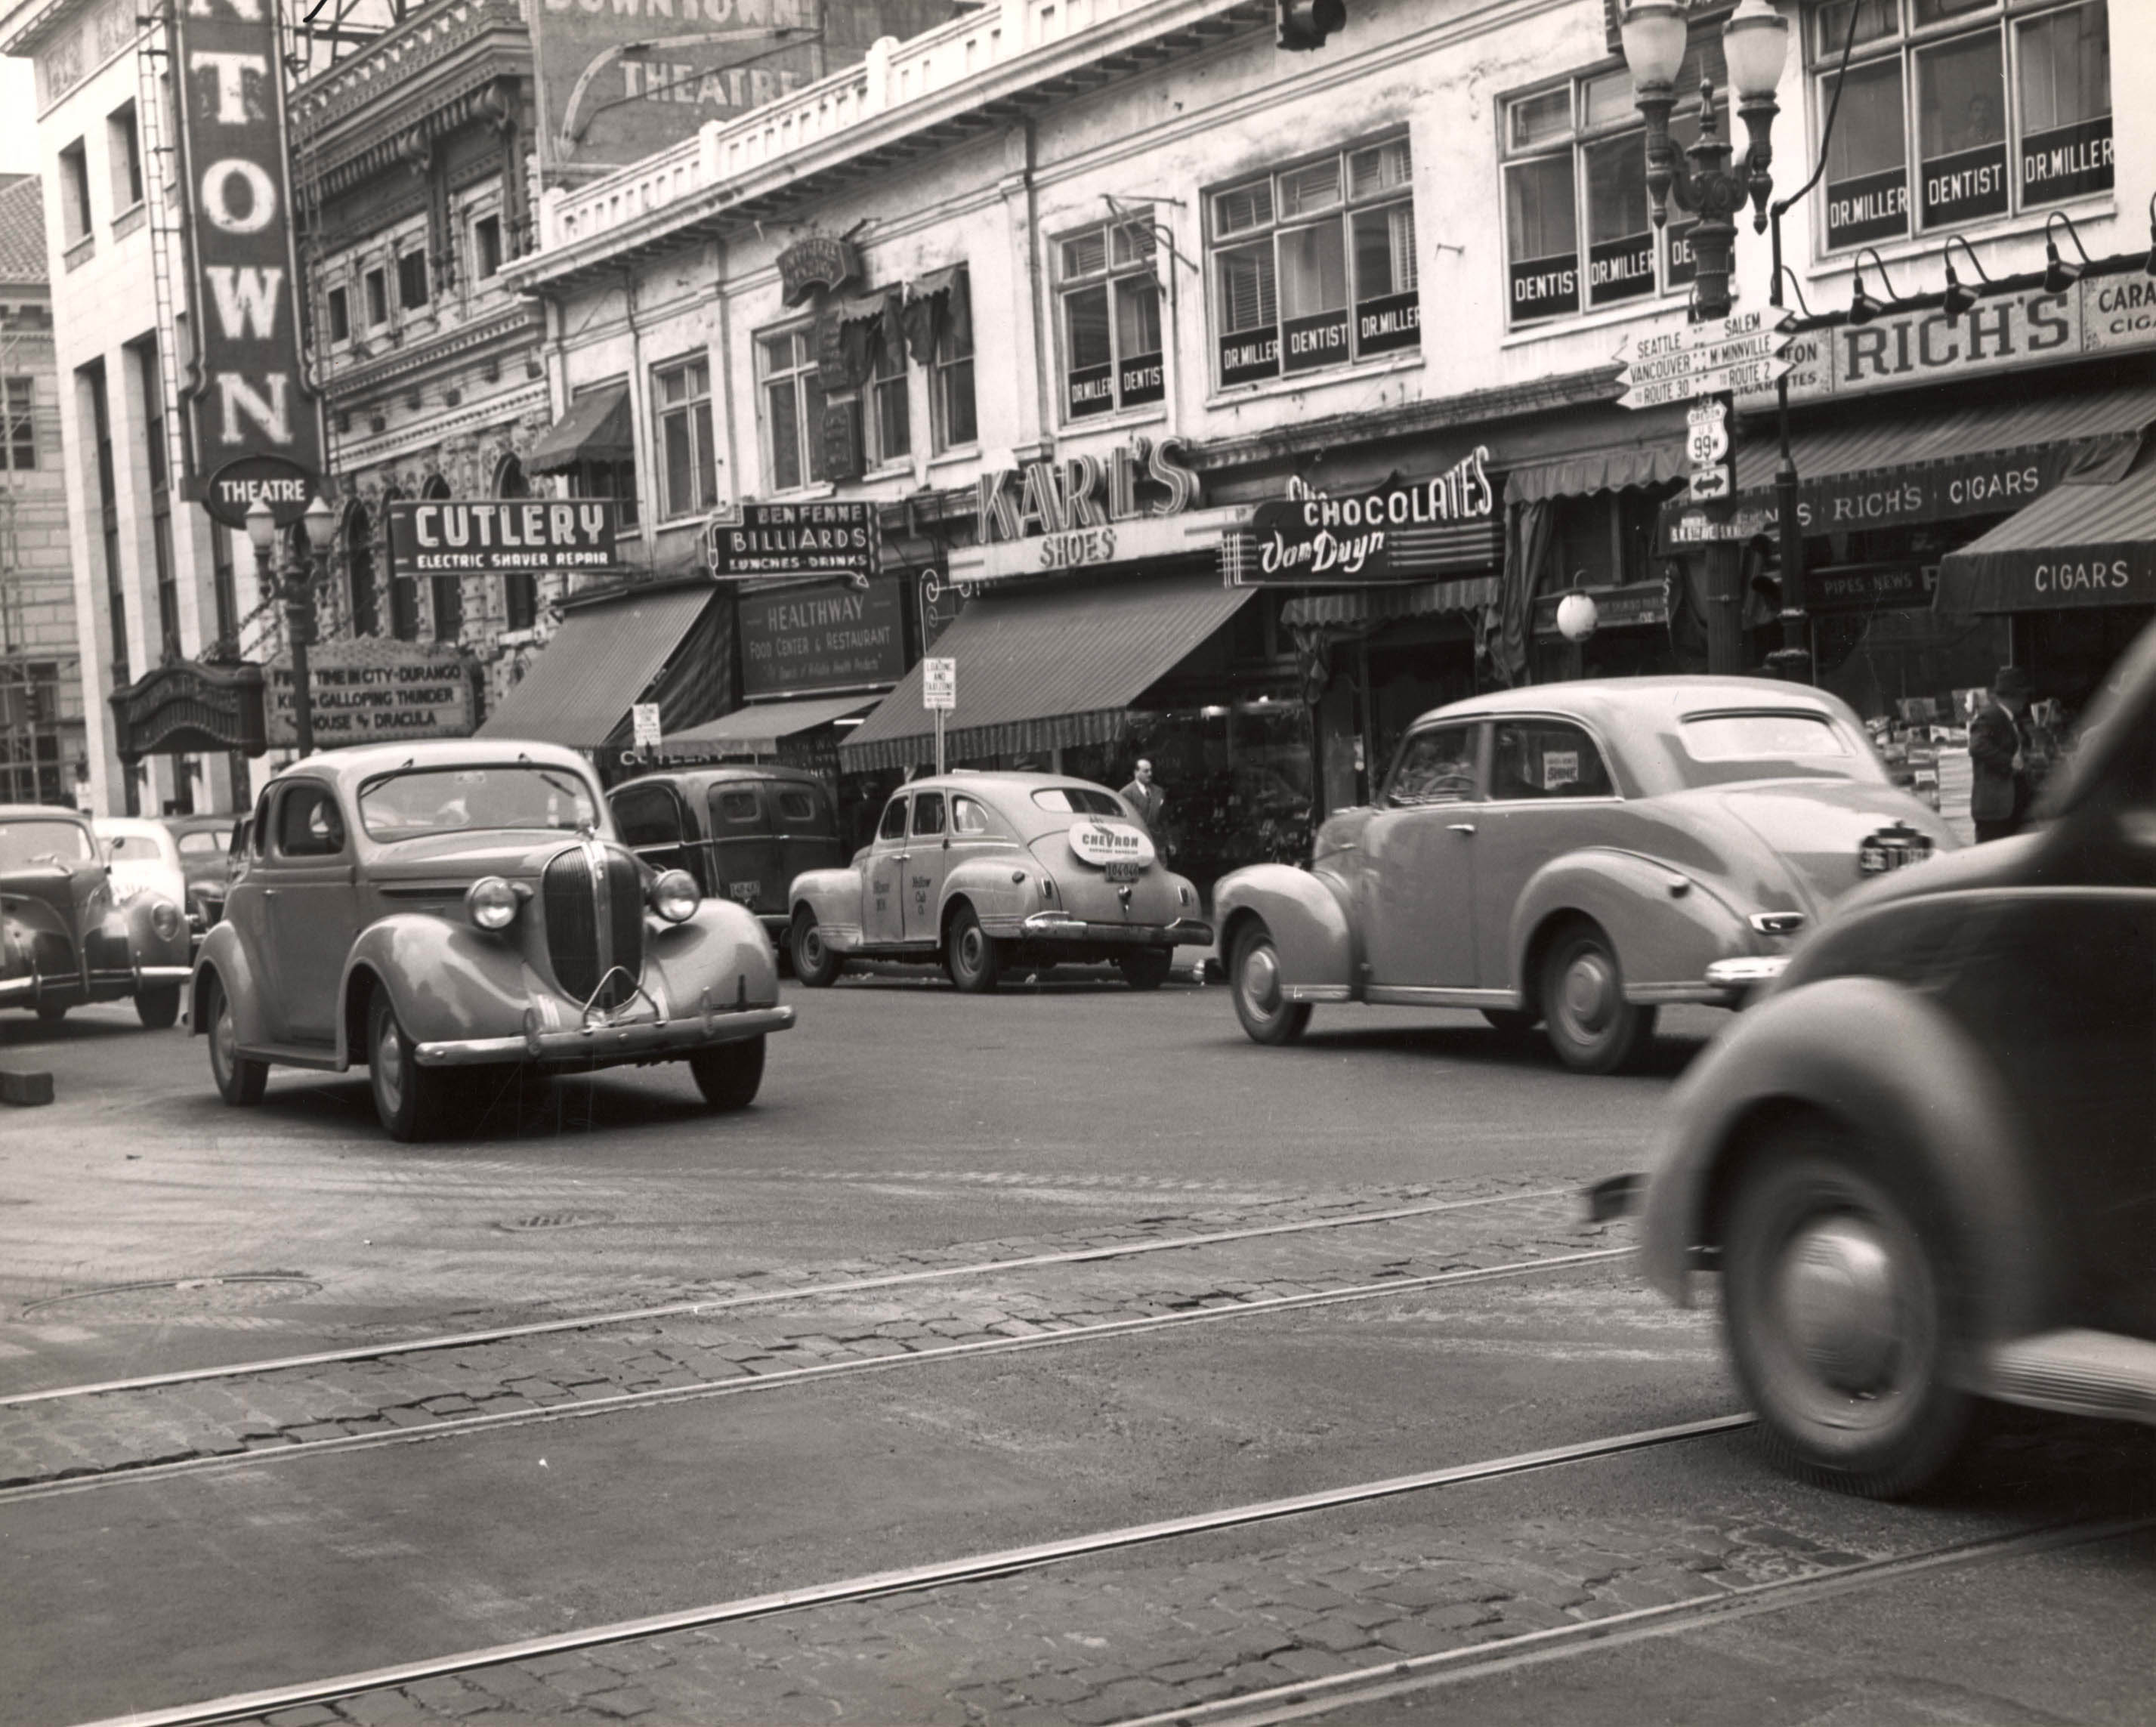 SW 6th Ave & Washington, 1946 ...